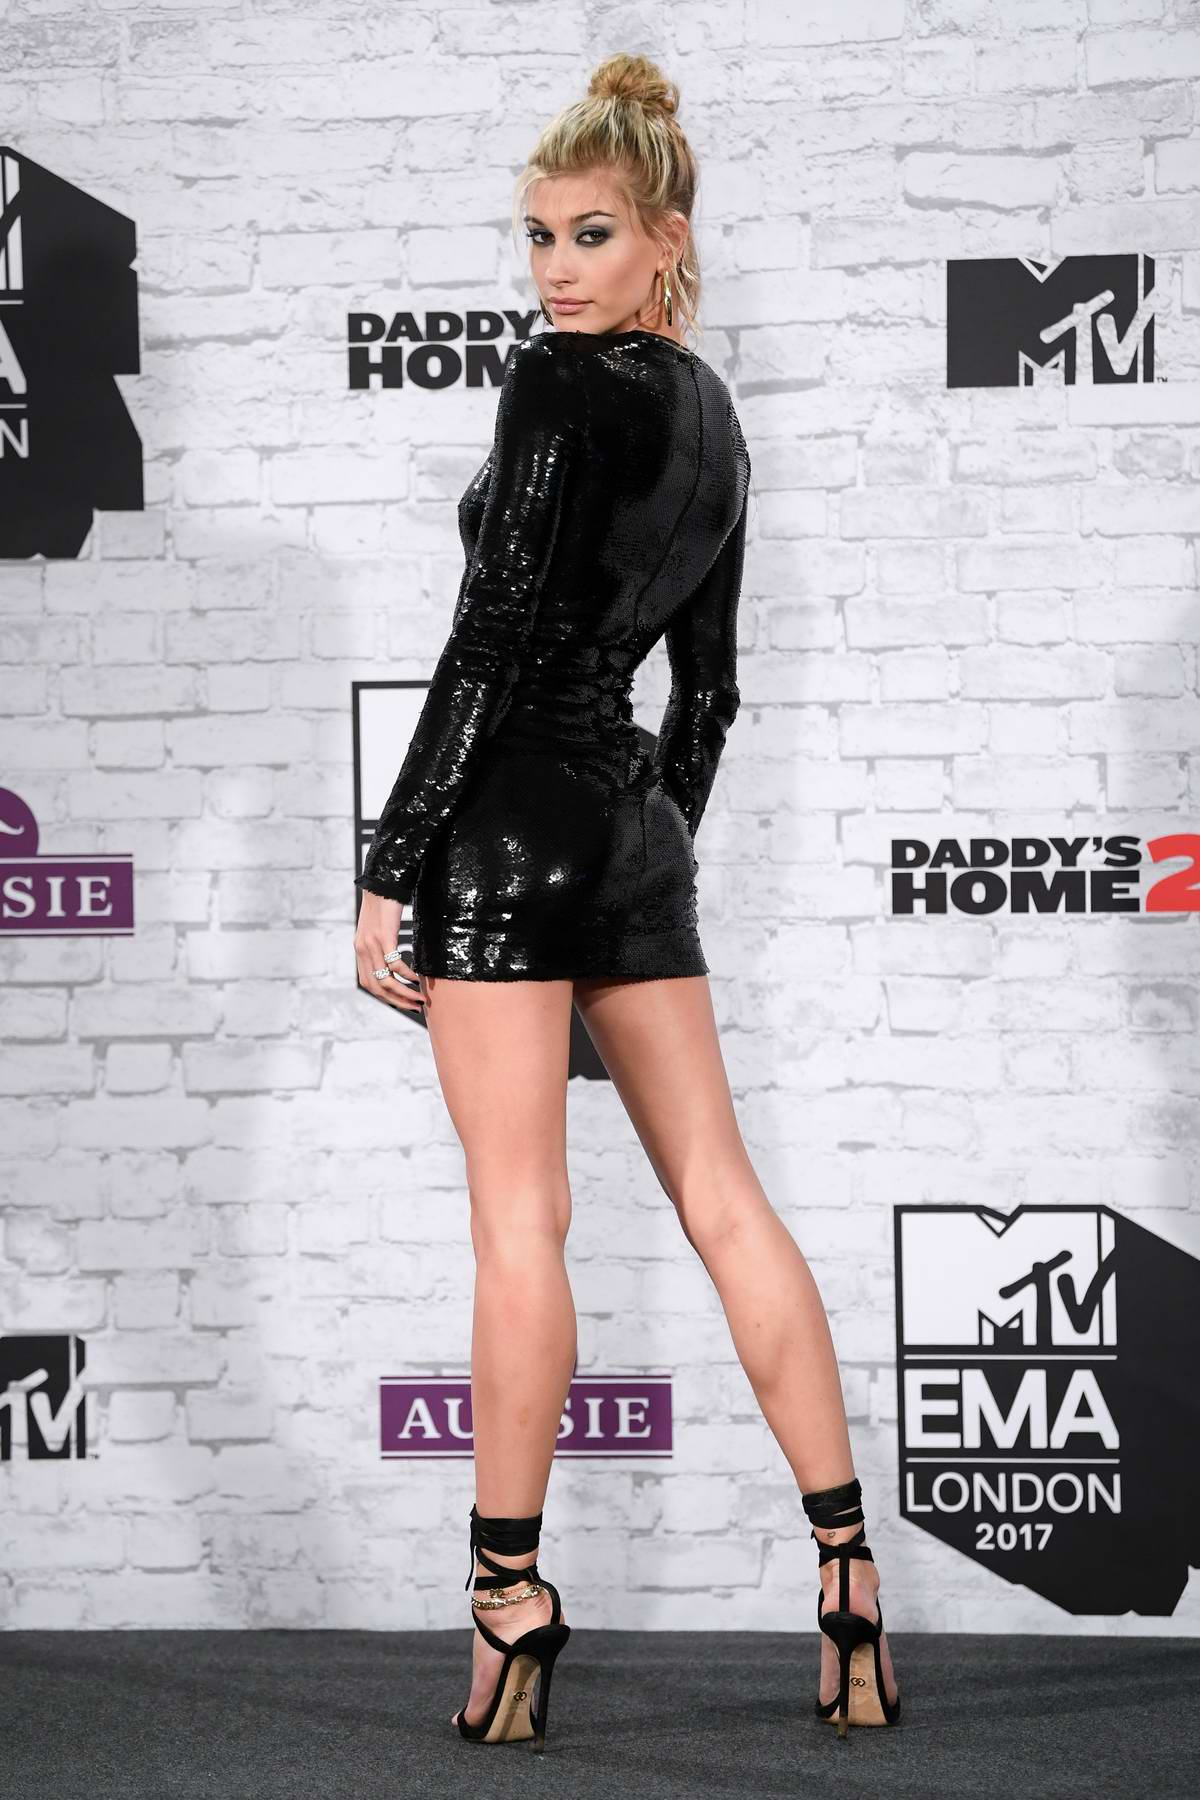 Hailey Baldwin at the 24th MTV Europe Music Awards held at SSE Arena Wembley in London